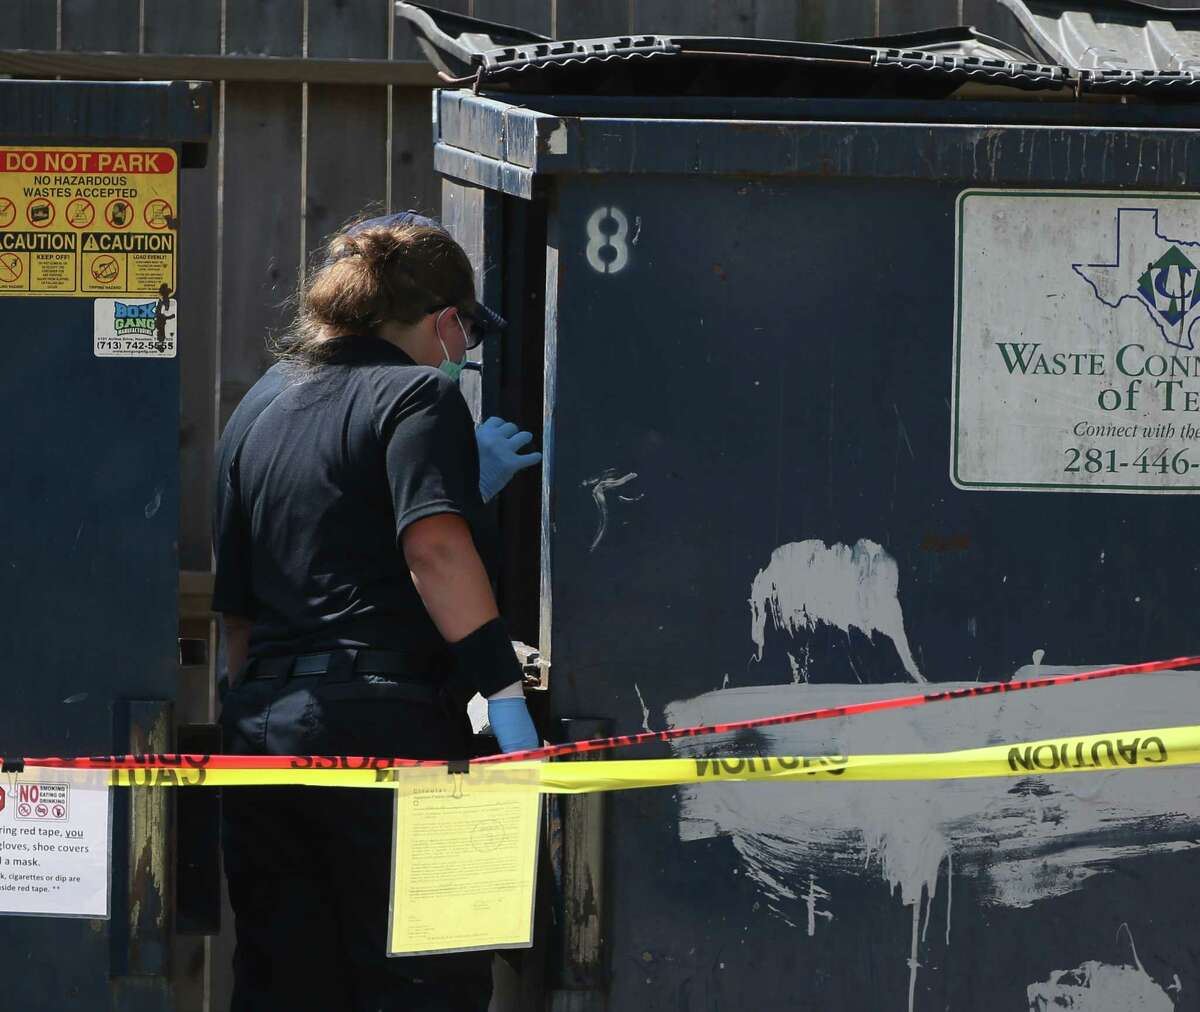 Houston Forensic Science Center investigators work at a scene where a deceased person was found in a dumpster at and apartment complex on the 5600 block of Antoine Drive on Wednesday, Sept. 4, in Houston.